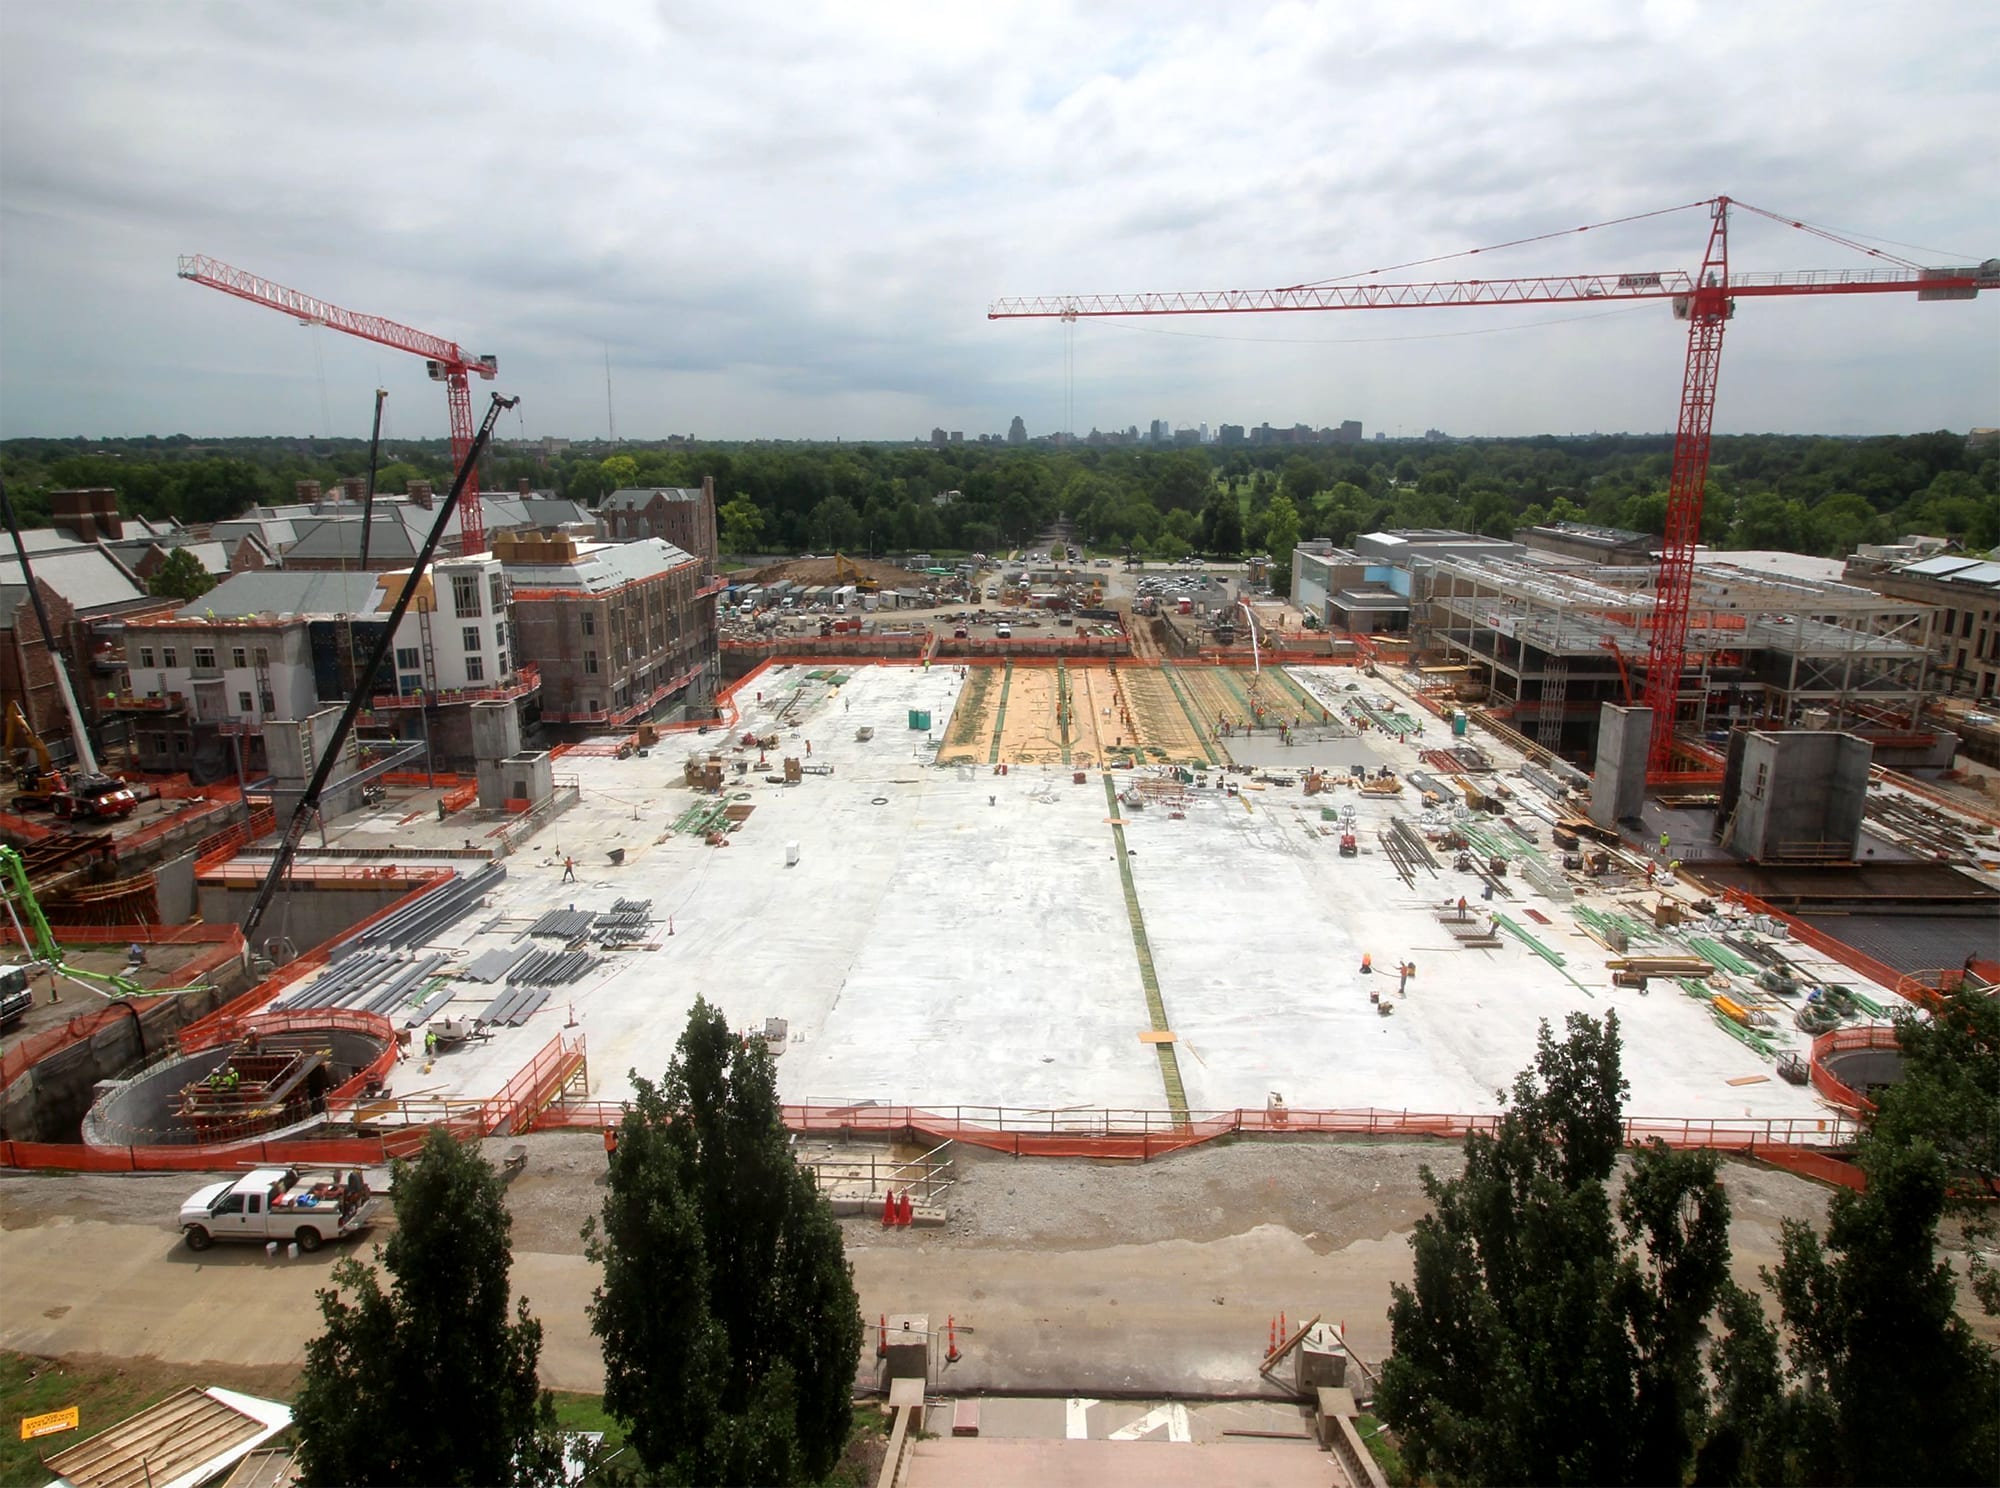 large expanse of concrete on a construction site with red cranes